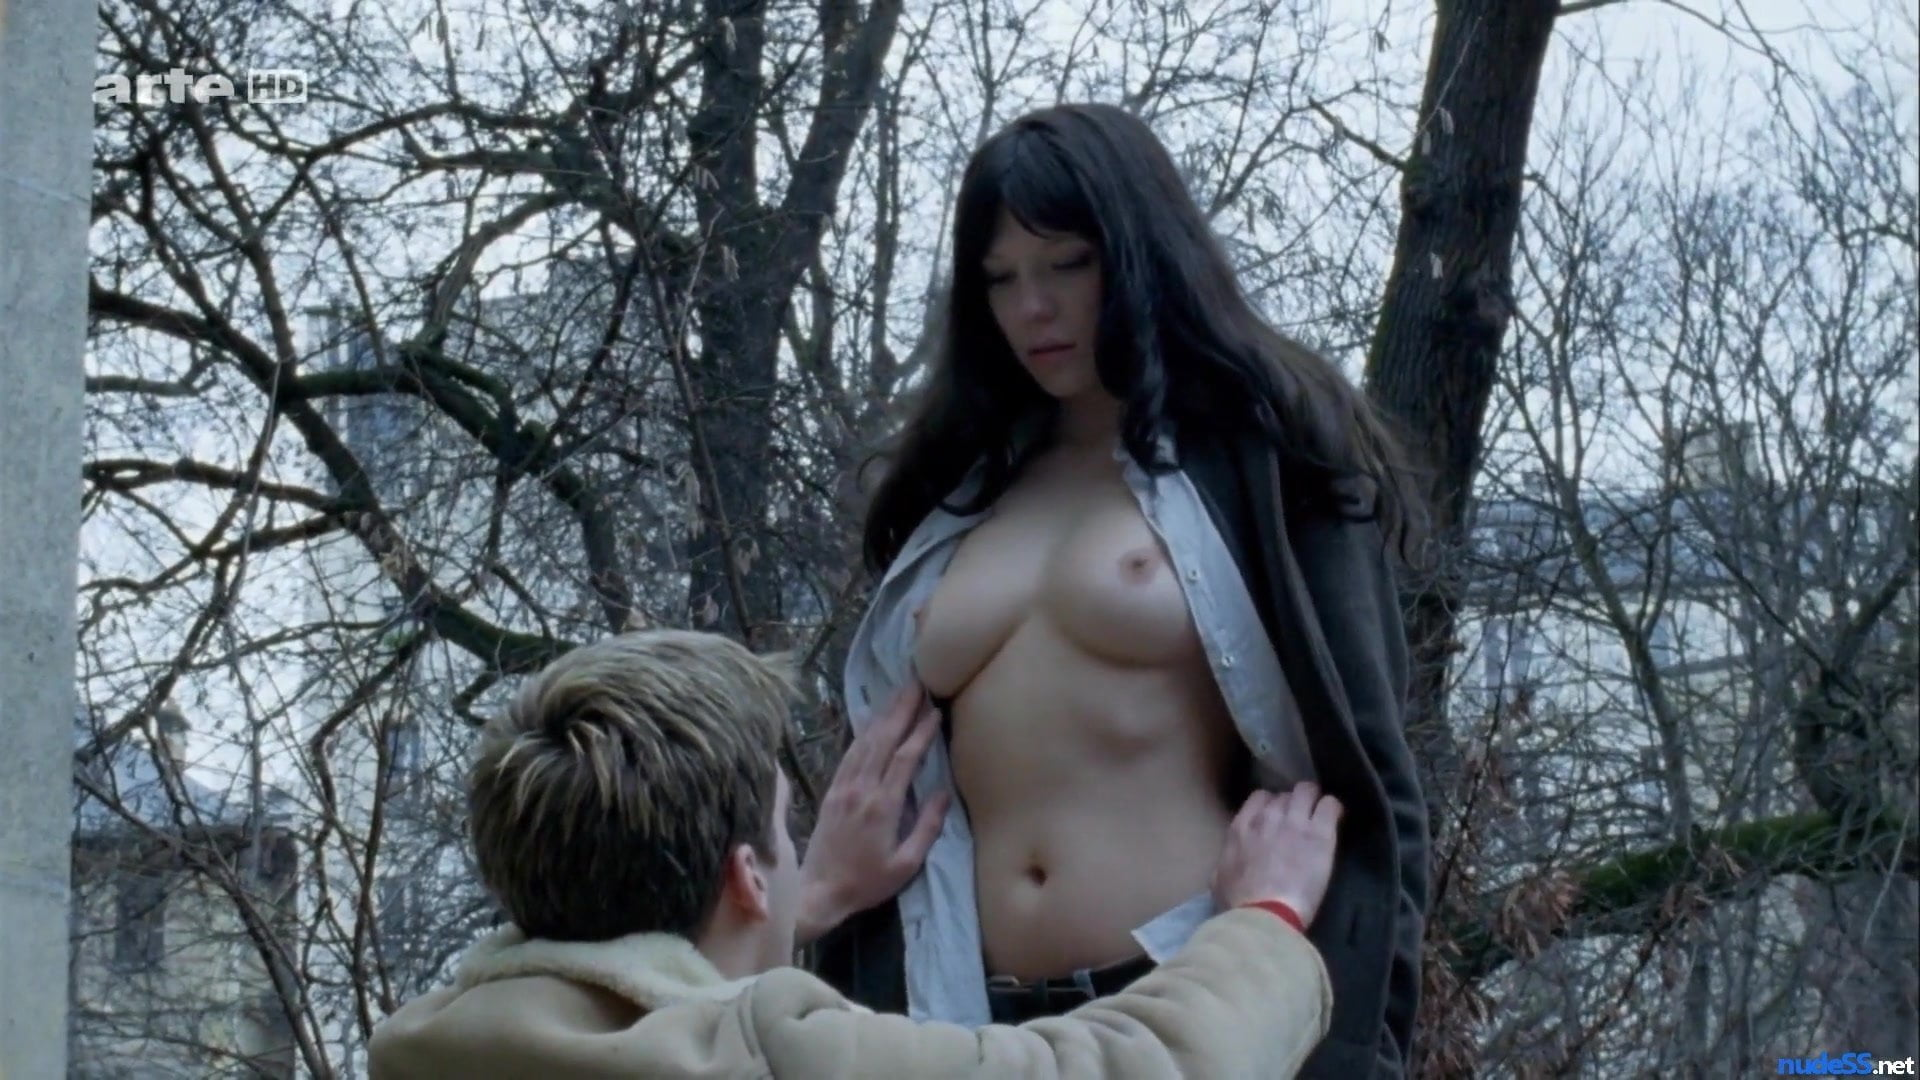 Elizabeth Lail Nude Topless Pics And Sex Scenes The Fappening